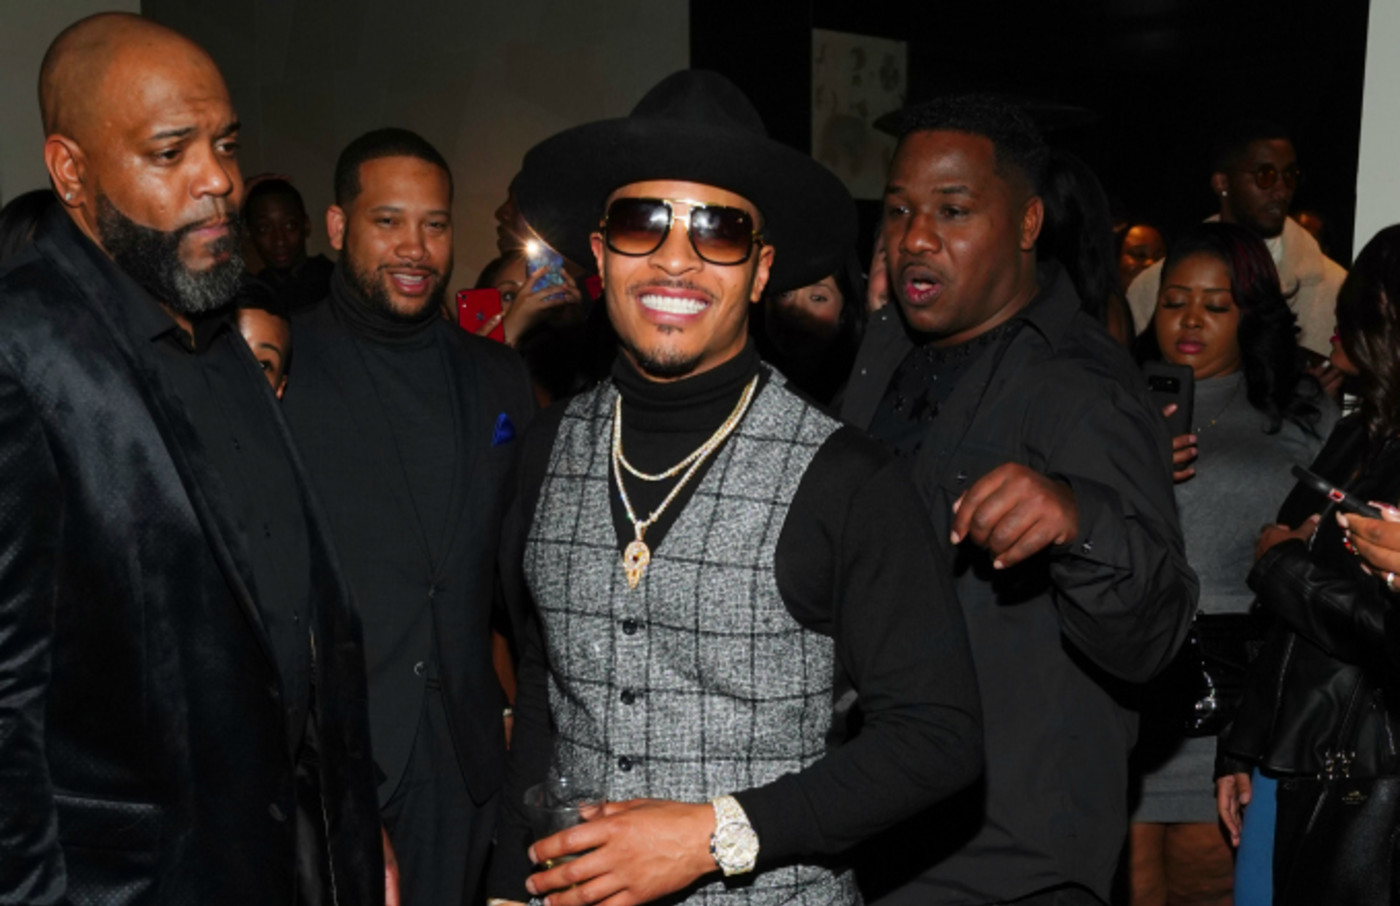 T.I. attends Official Big Game Kick Off Hosted by Trey Songz + Jeezy